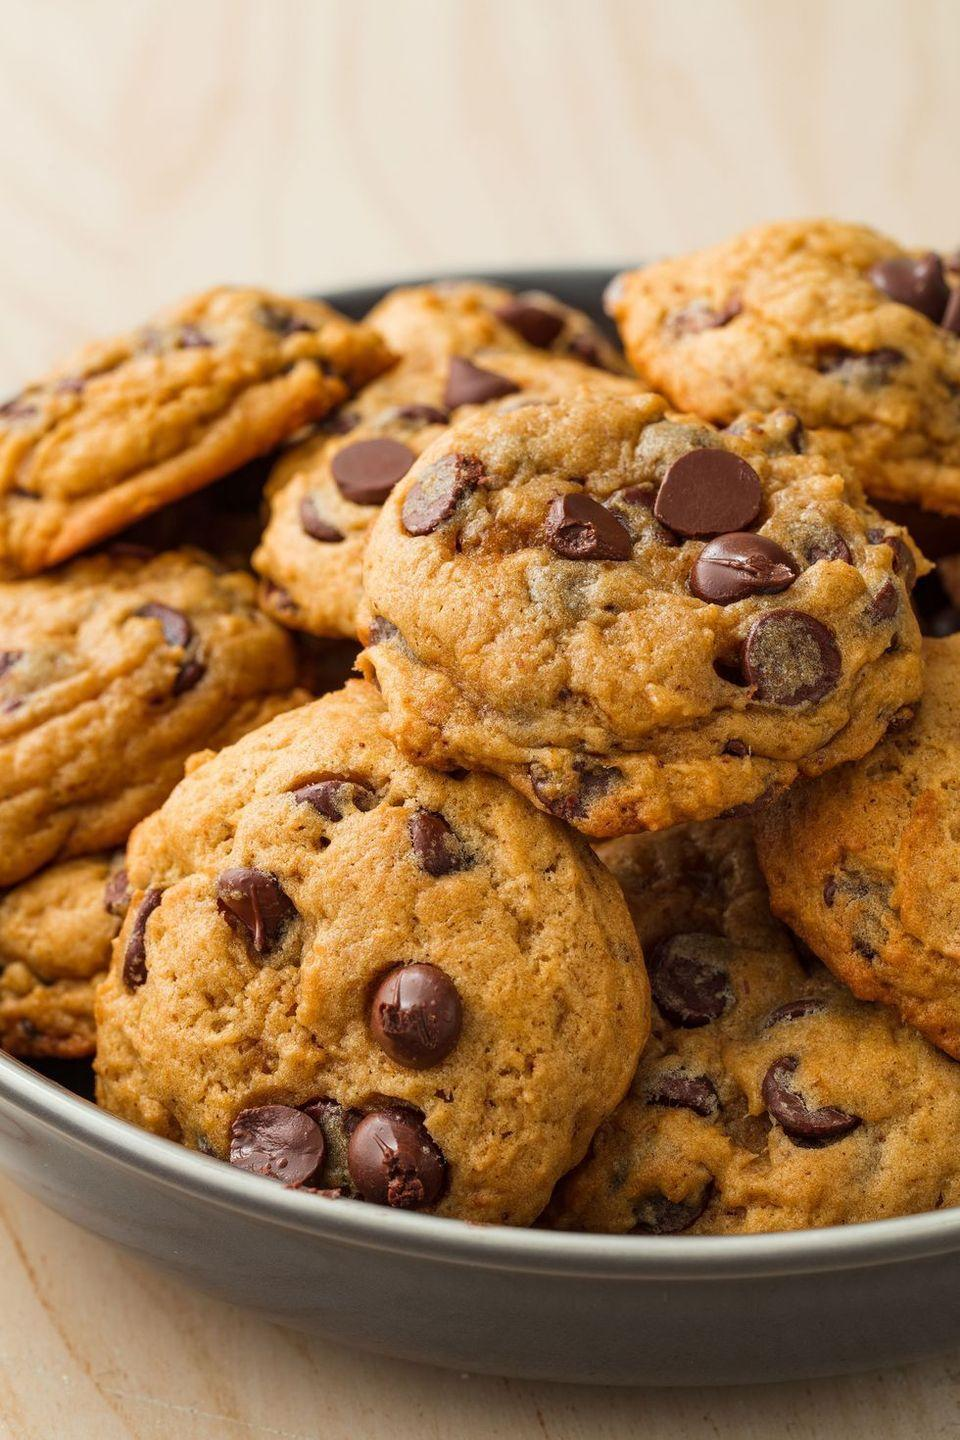 """<p>There's nothing as classic as a chocolate cookie, and this pumpkin flavored variety will bring the recipe right into Fall. </p><p><strong><em>Get the recipe at <a href=""""https://www.delish.com/cooking/recipe-ideas/recipes/a55742/pumpkin-spice-chocolate-chip-cookies-recipe/"""" rel=""""nofollow noopener"""" target=""""_blank"""" data-ylk=""""slk:Delish"""" class=""""link rapid-noclick-resp"""">Delish</a>. </em></strong></p>"""